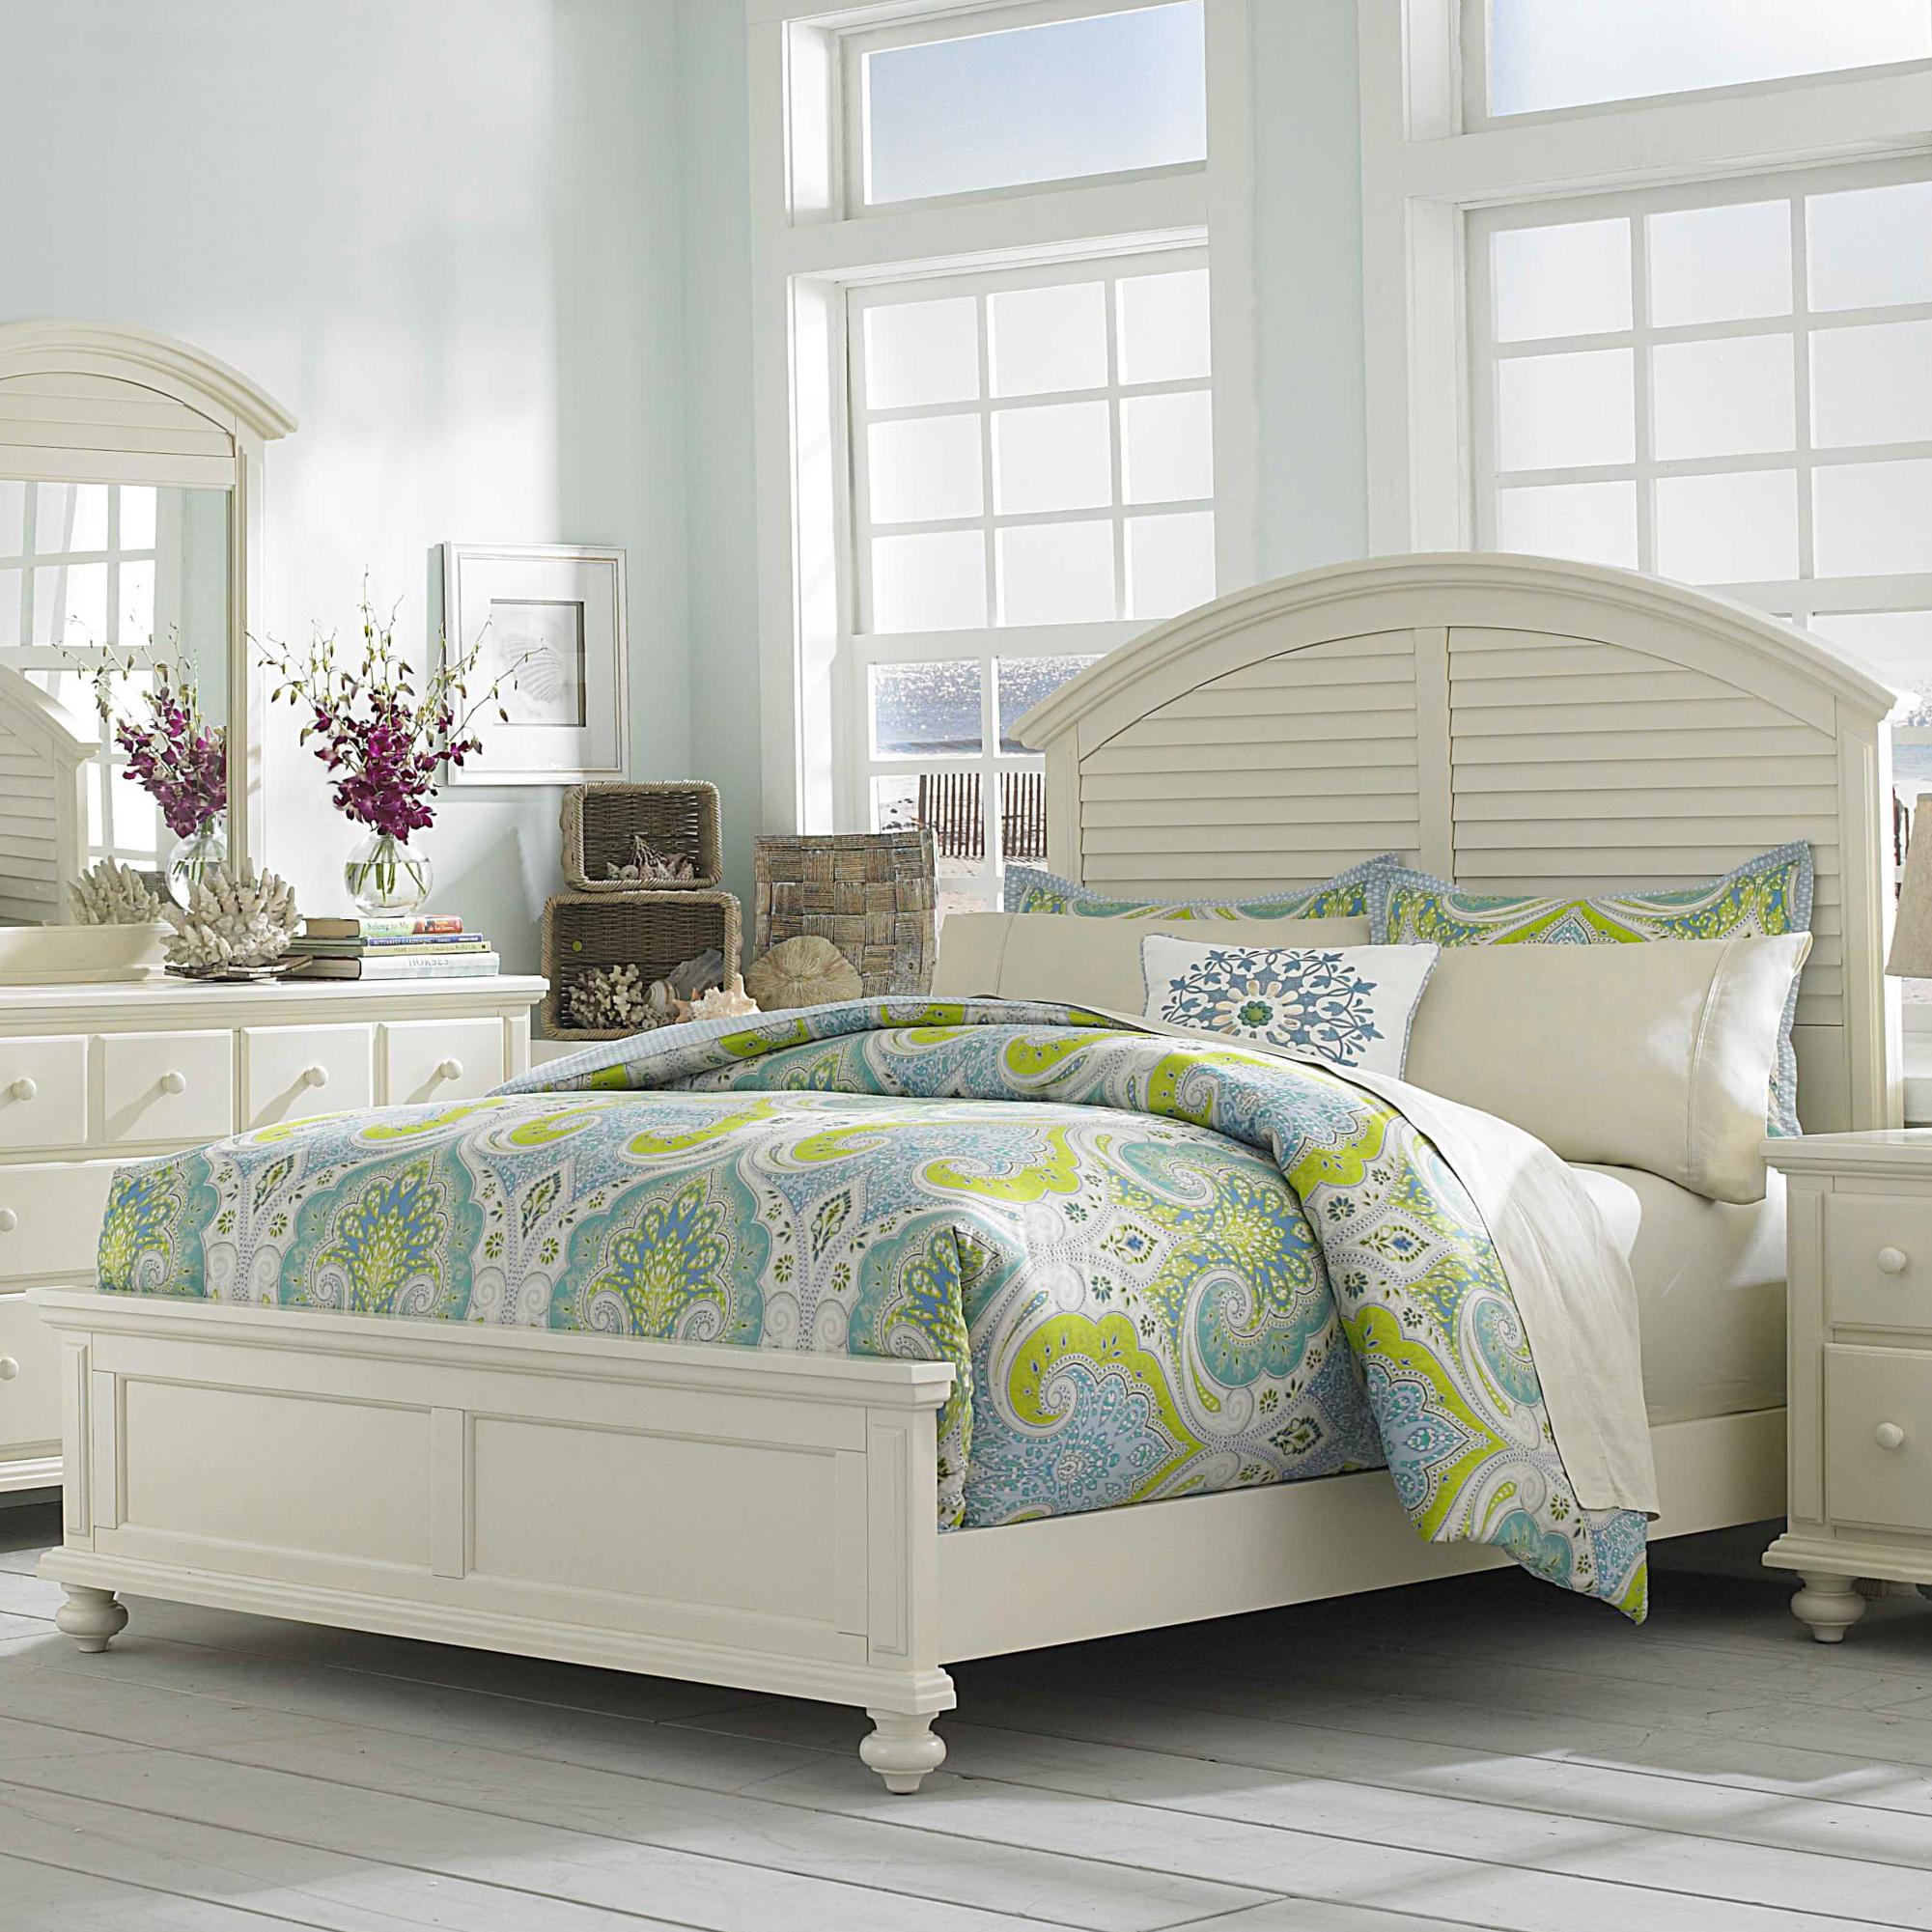 Broyhill furniture seabrooke queen panel bed with arched louvered headboard baer 39 s furniture Broyhill master bedroom sets